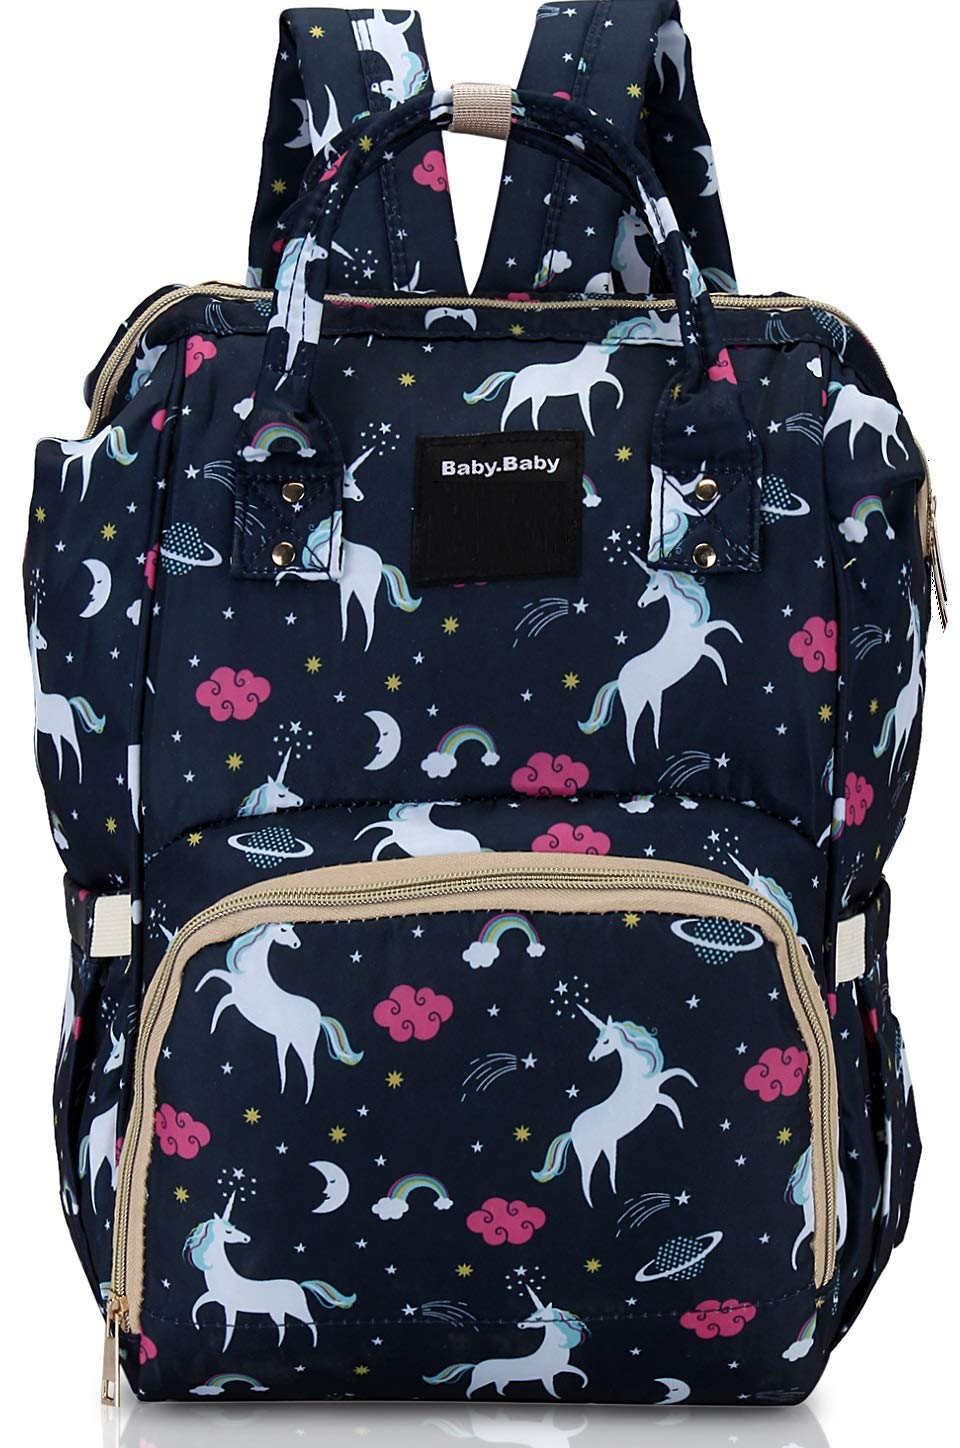 The Baby Co. Diaper Bag Backpack